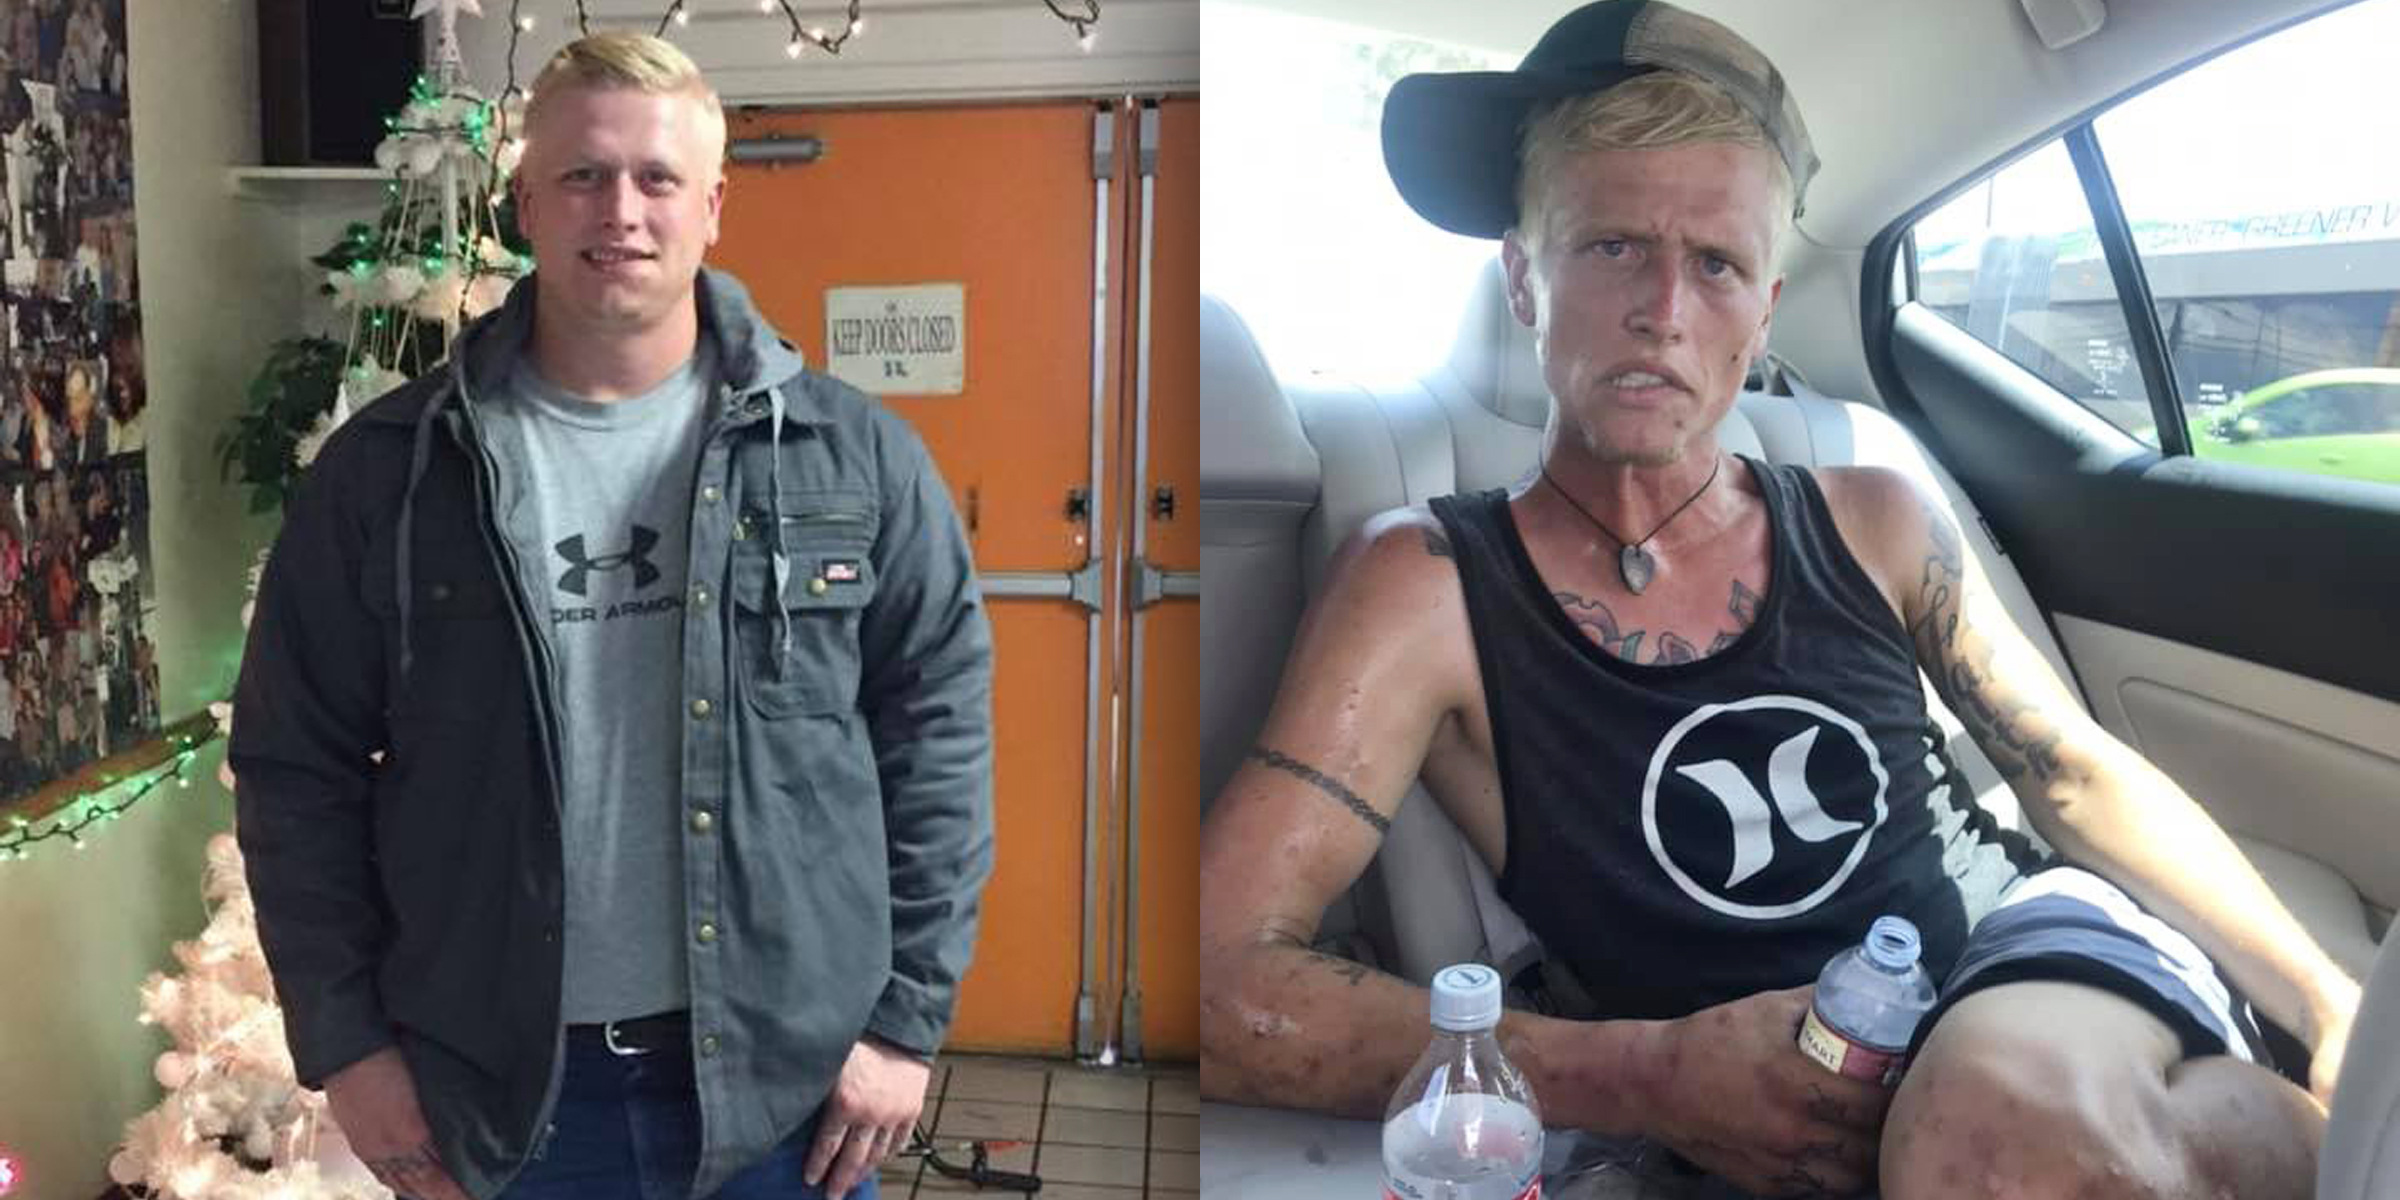 'The face of heroin': Mom shares haunting before and after photos of her addicted son